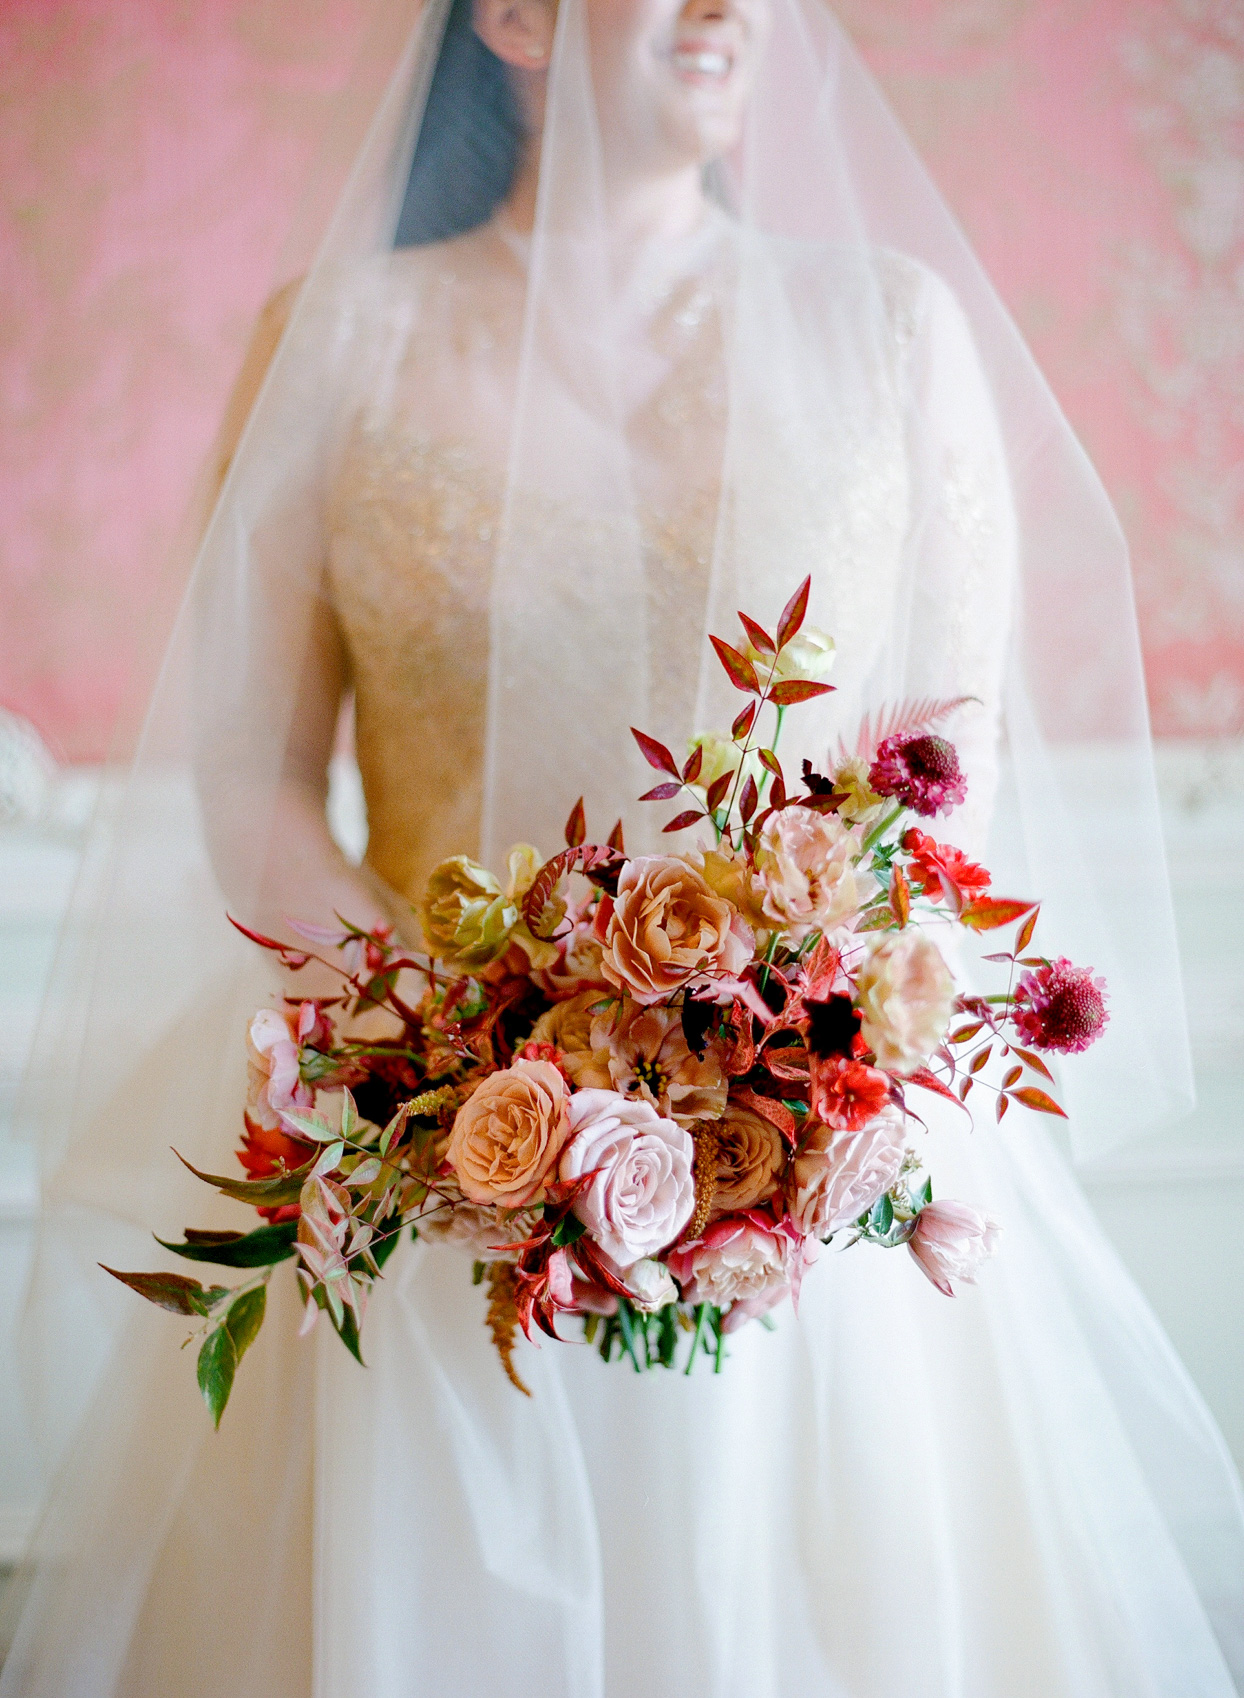 bride in white and gold holing vibrant red and pink bouquet